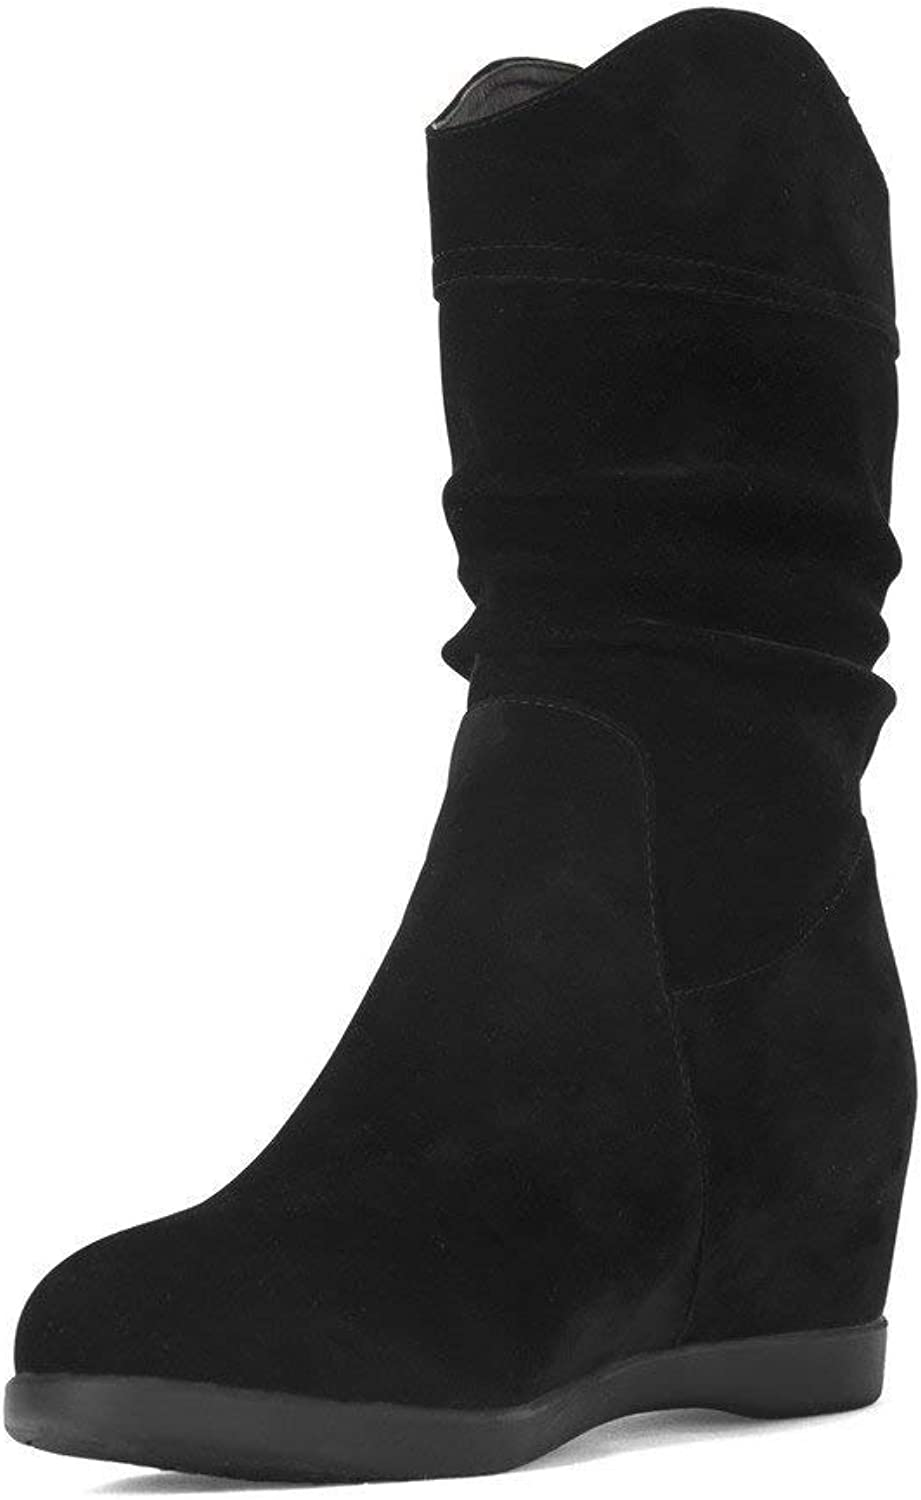 PRETTYHOMEL Women's Low-Heels Solid Round Closed Toe Frosted Pull-on Boots